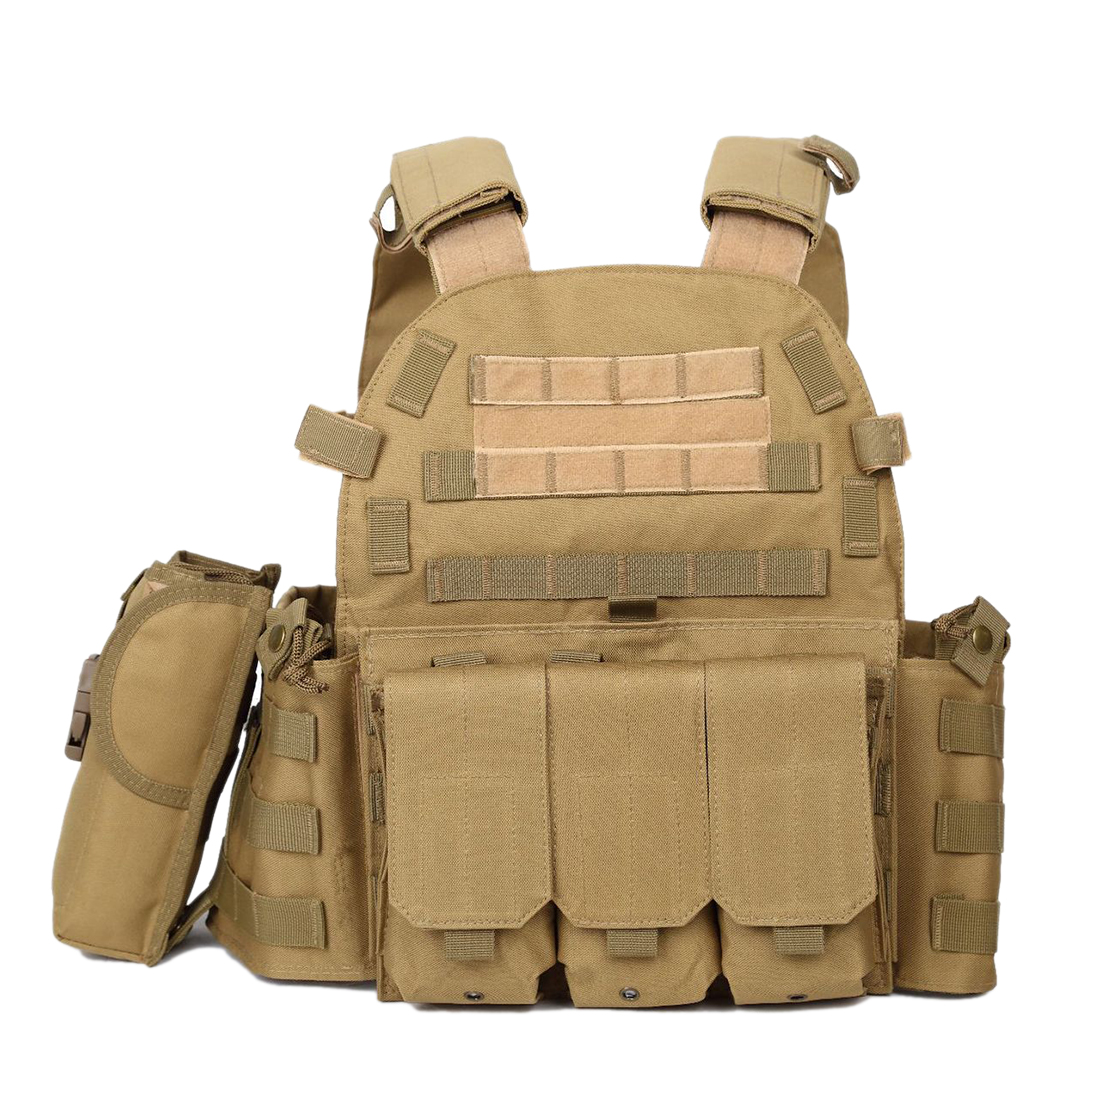 Js-6094 Plate Carrier Modular Military Vest For Airsoft Outdoor Activities Paintball Accessories- Tan